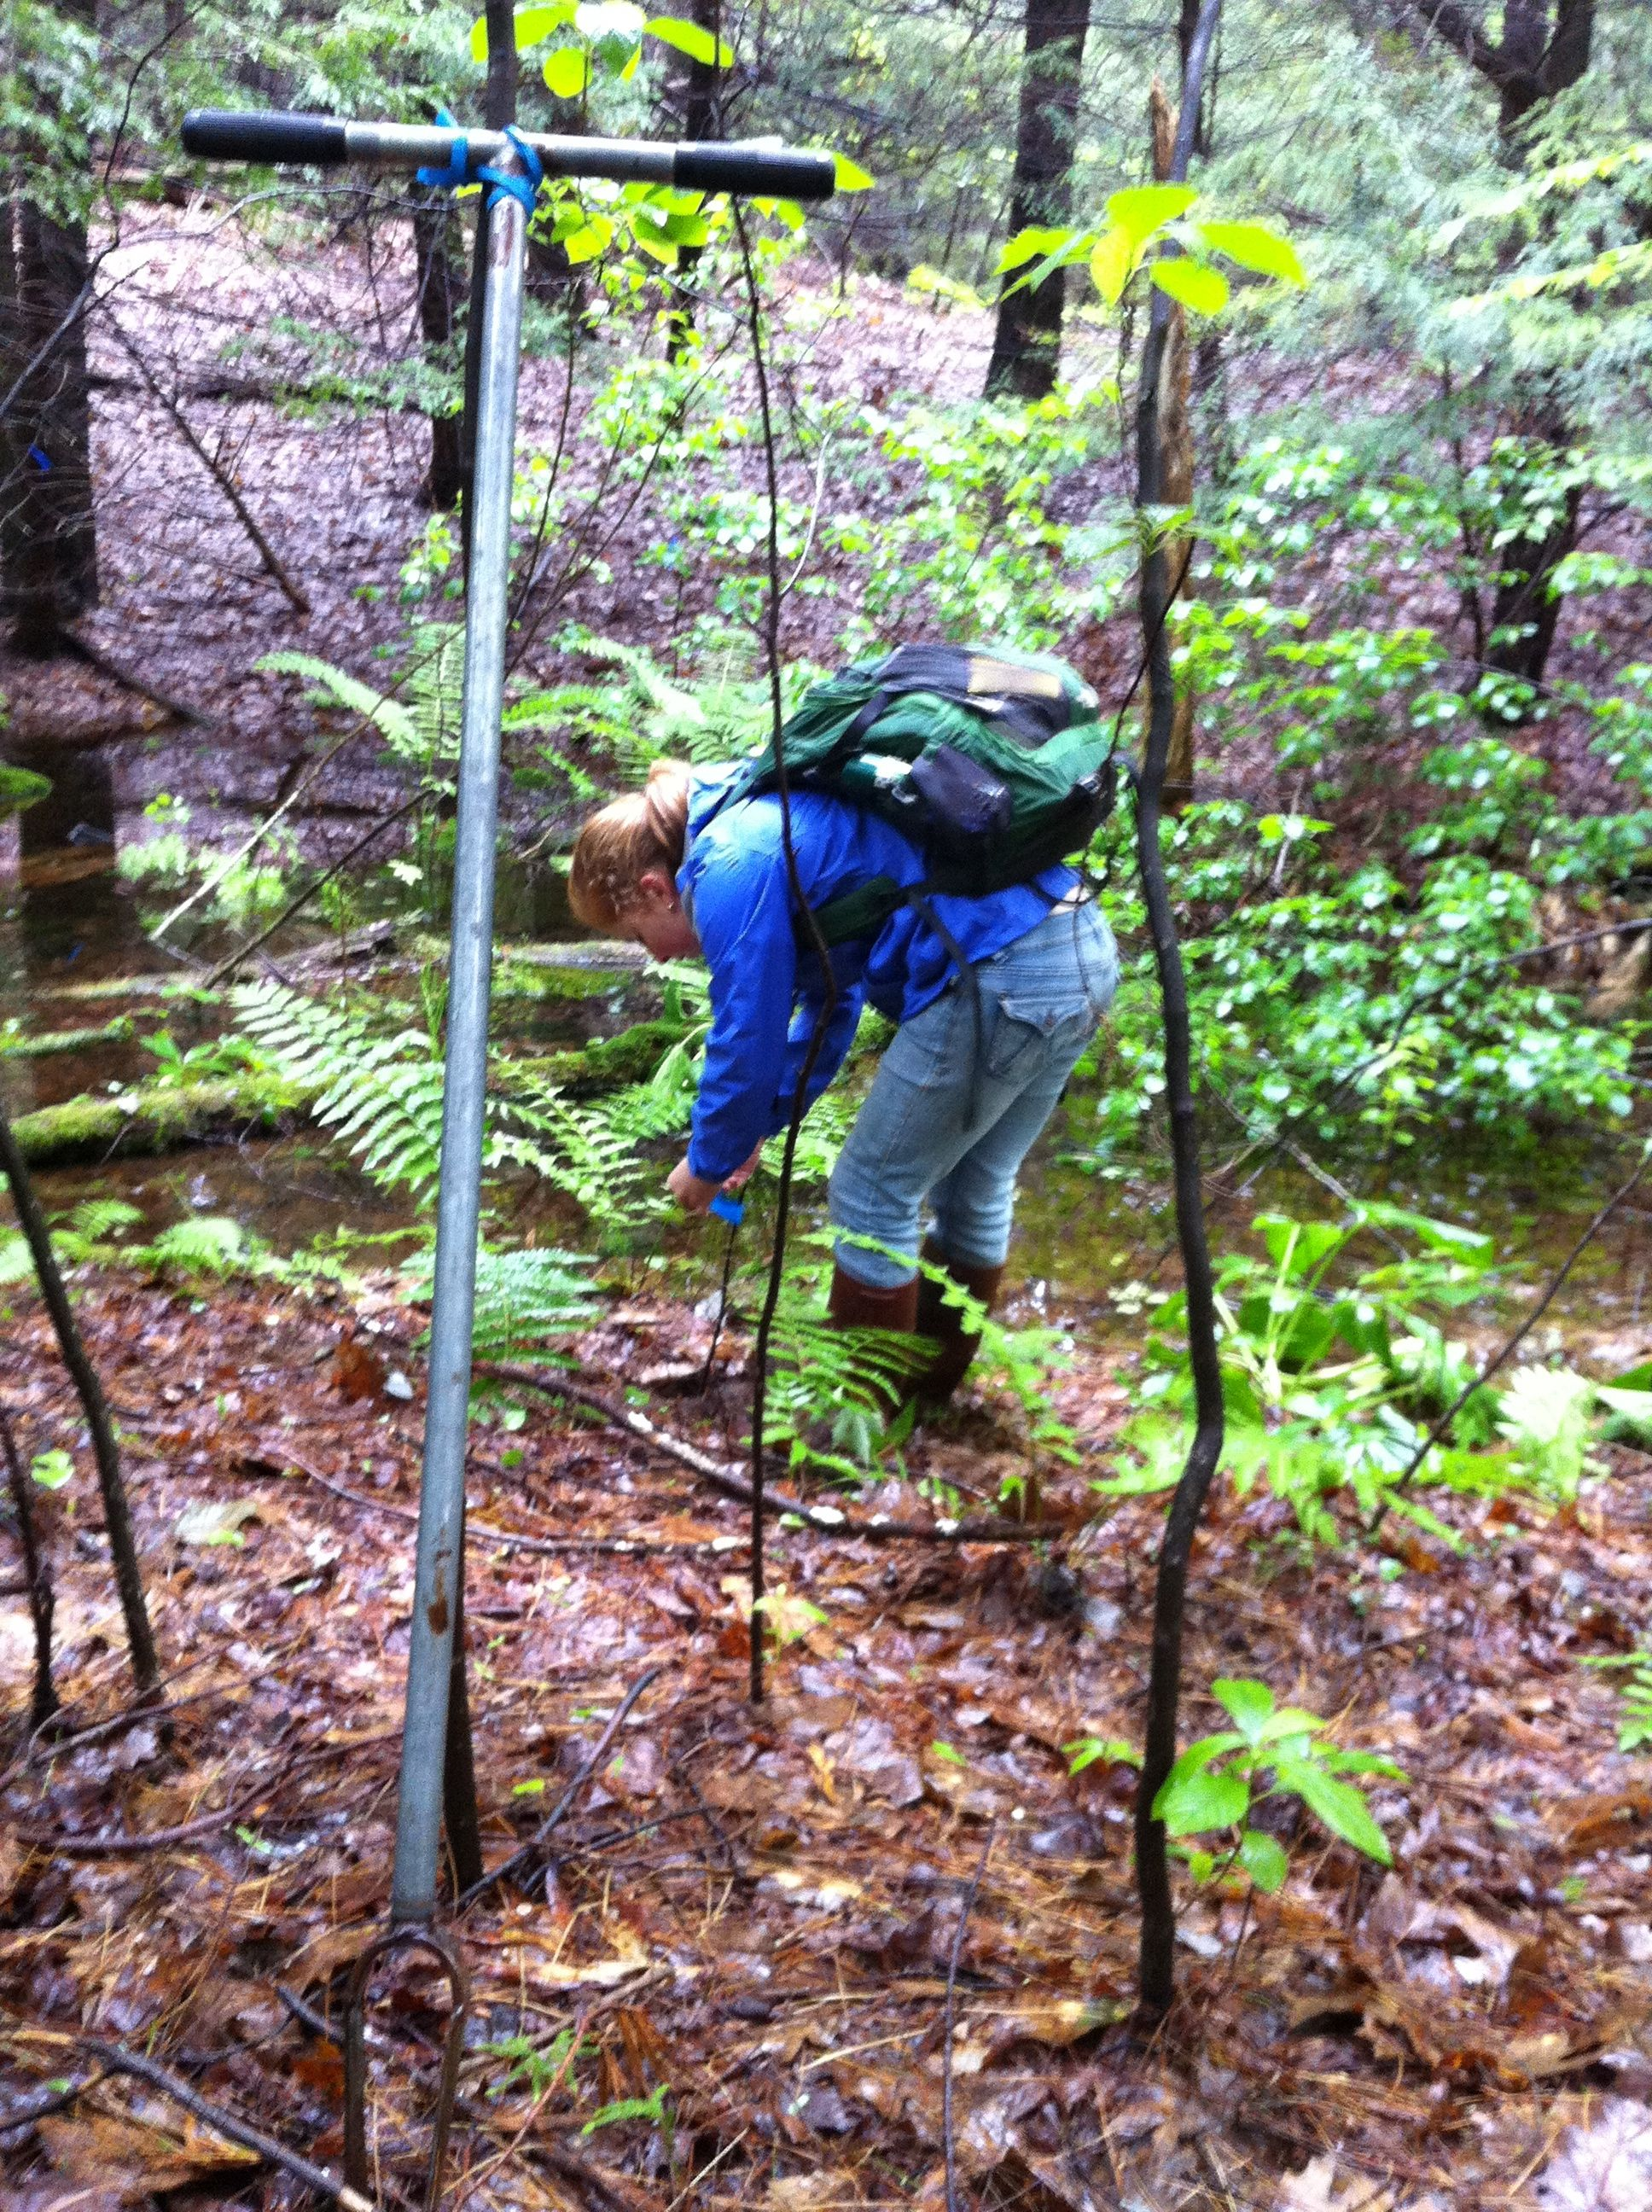 5 Day Inland Wetland Delineation Methods Course: Finding the Boundary of a Vernal Pool